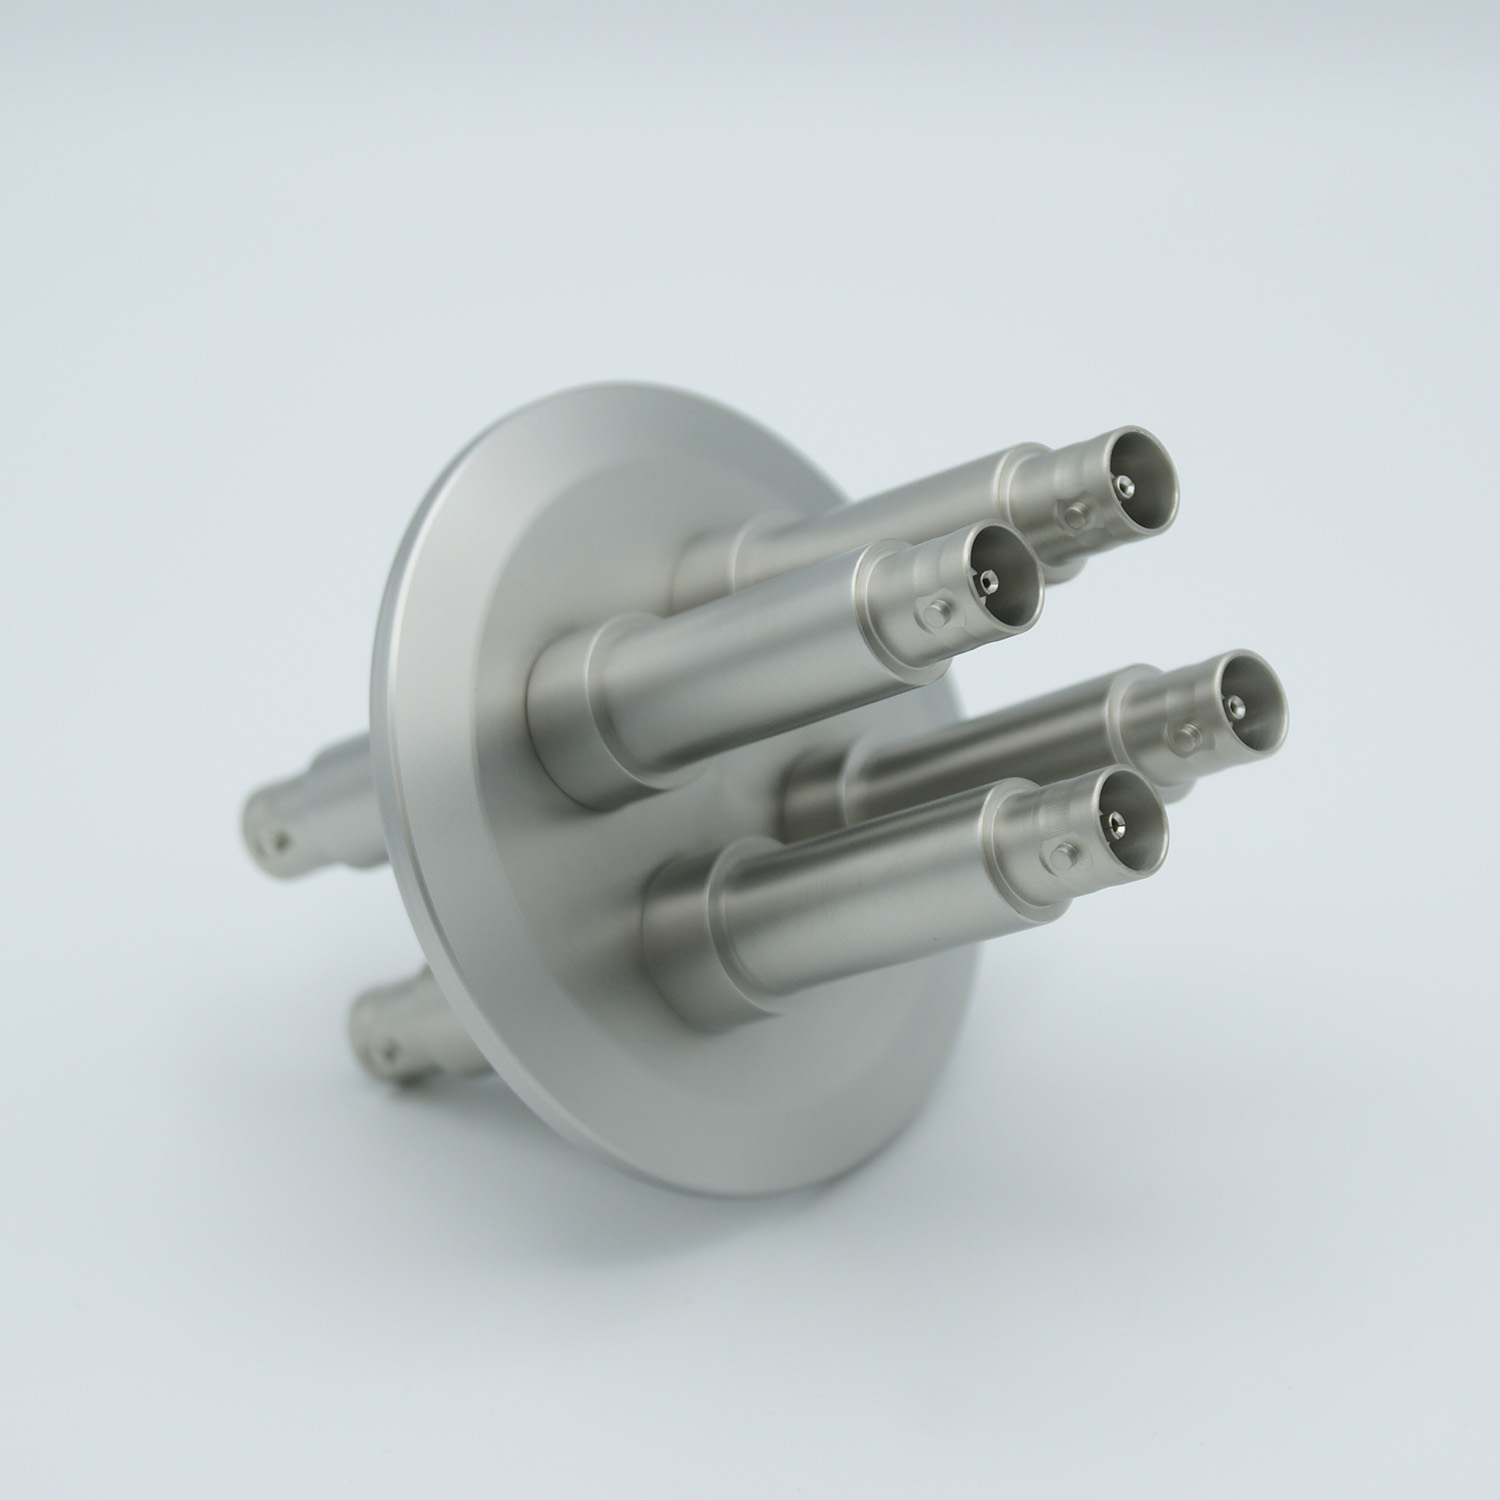 4 of grounded shield, double ended BNC feedthrough 500V / 3 Amp, air side connector included, DN50KF flange